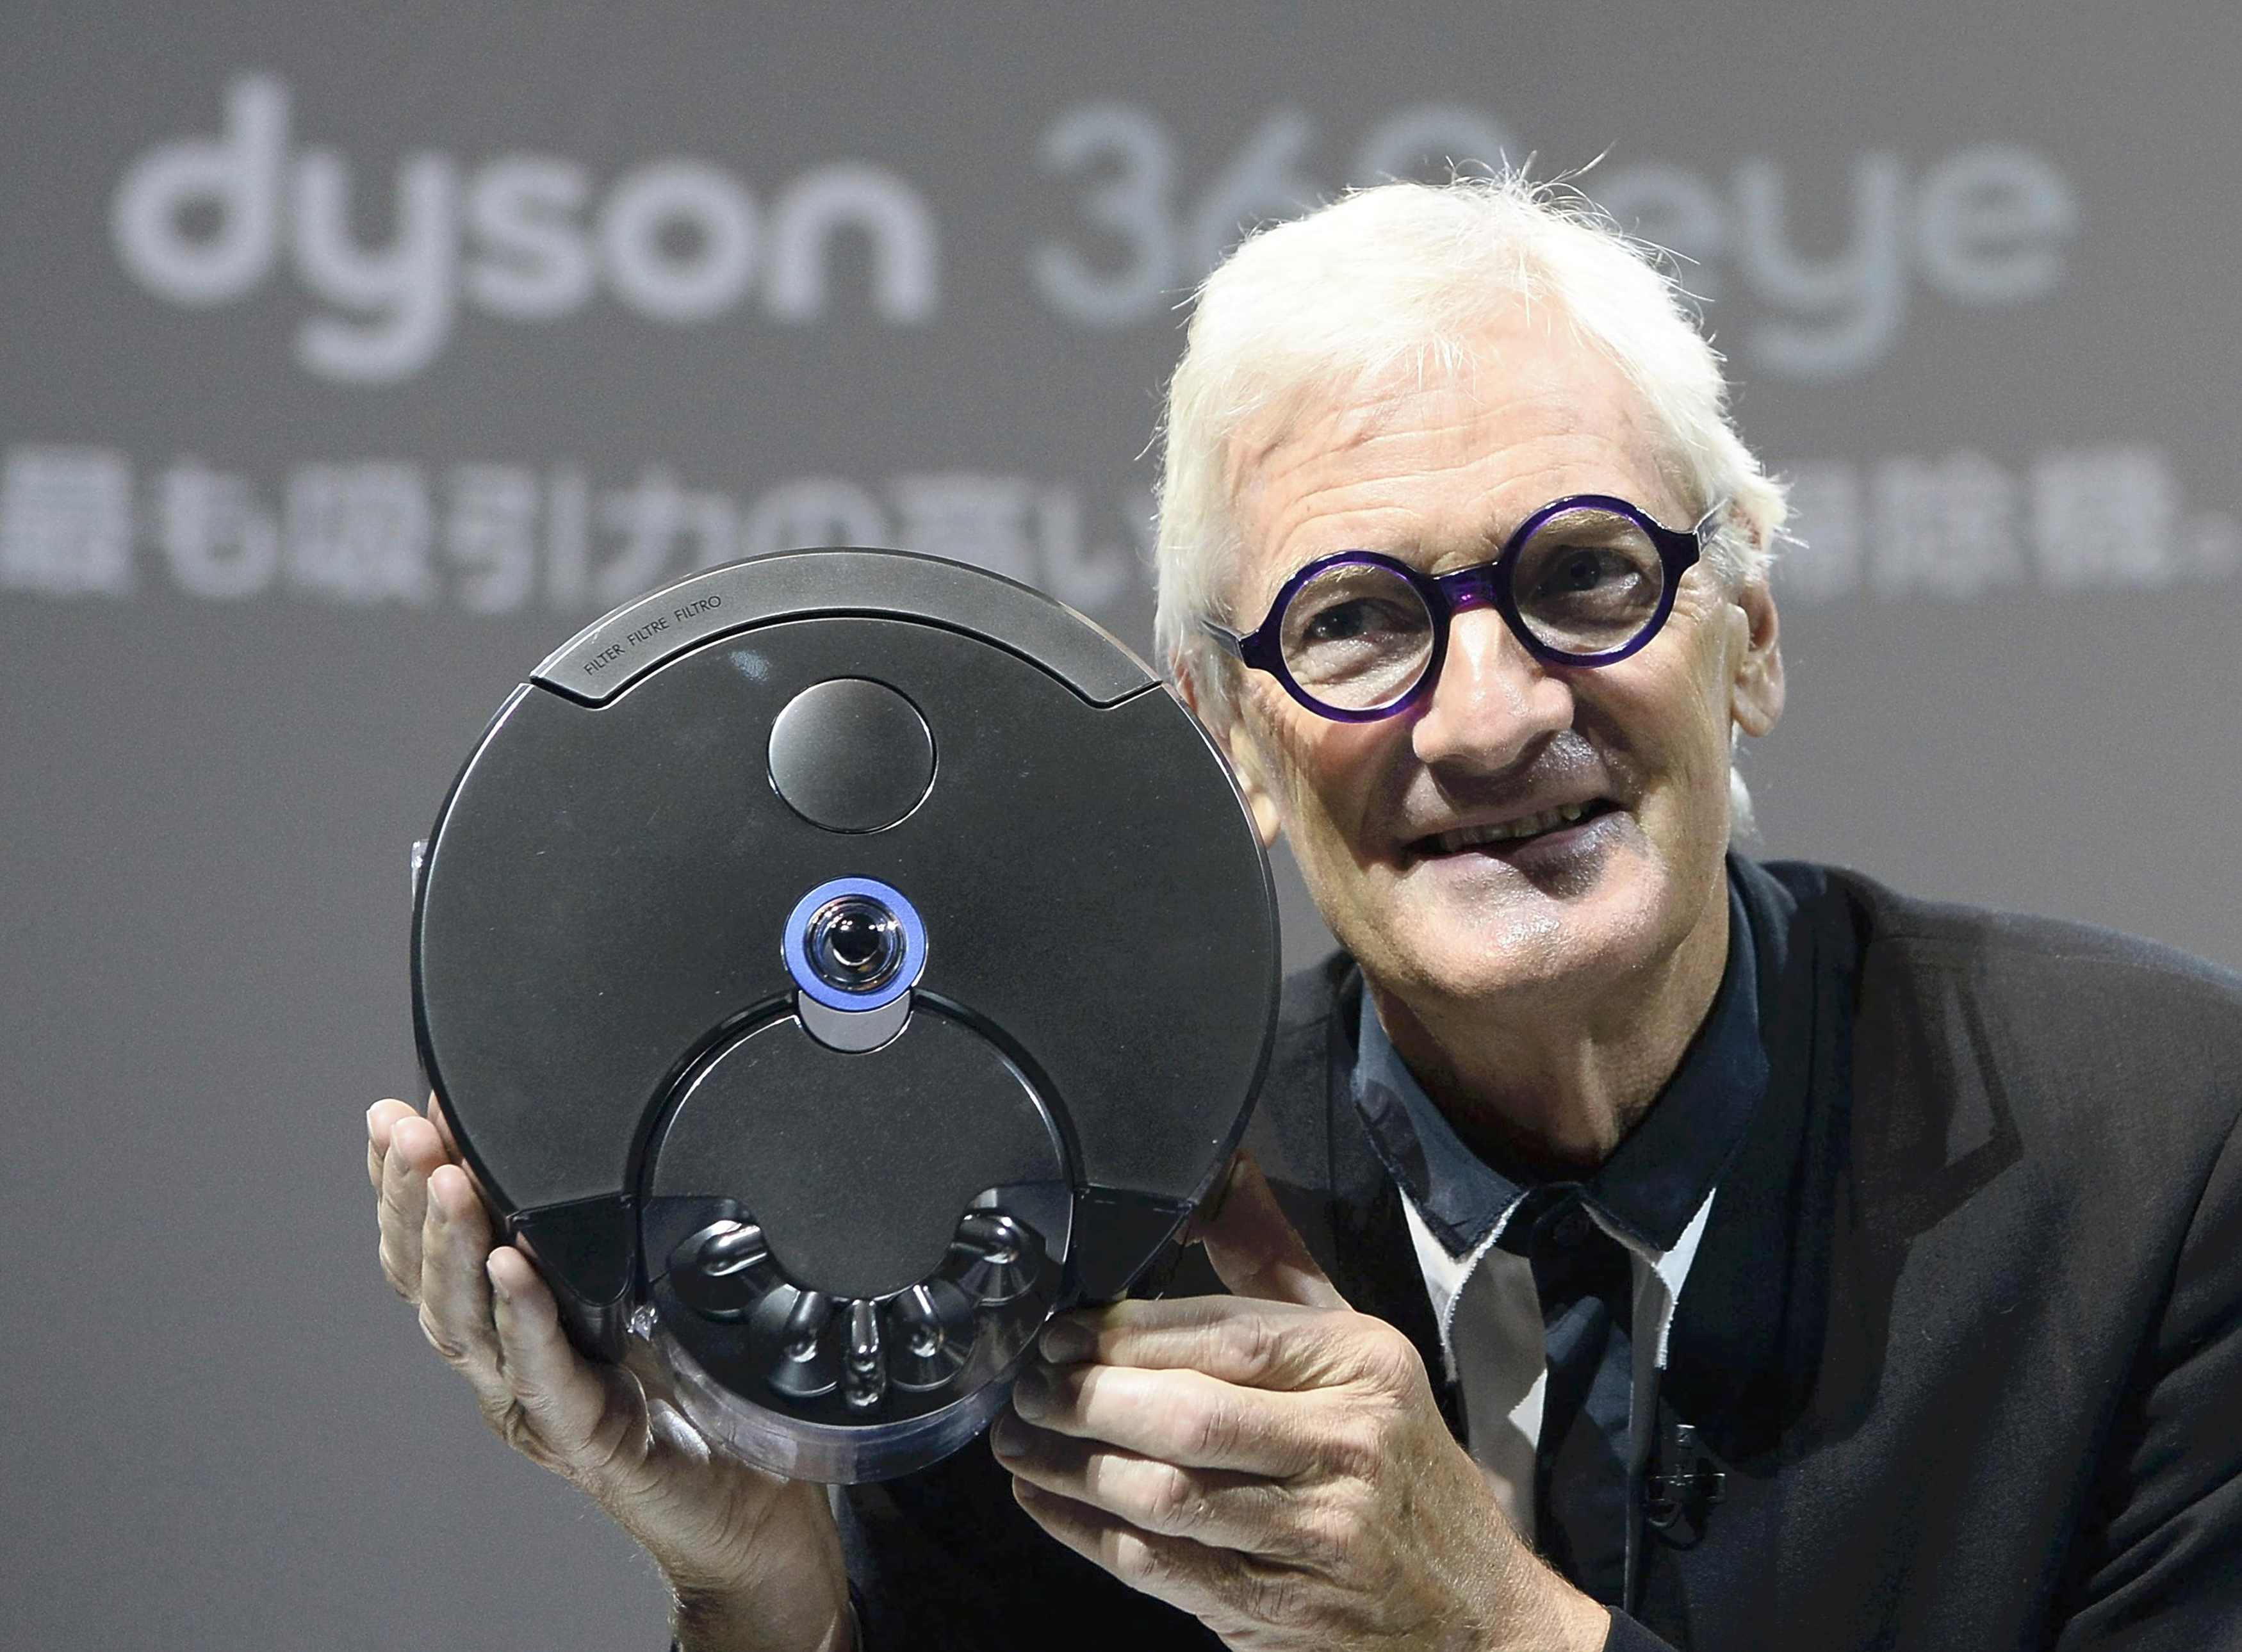 Dyson's new vaccum cleaner unveiled